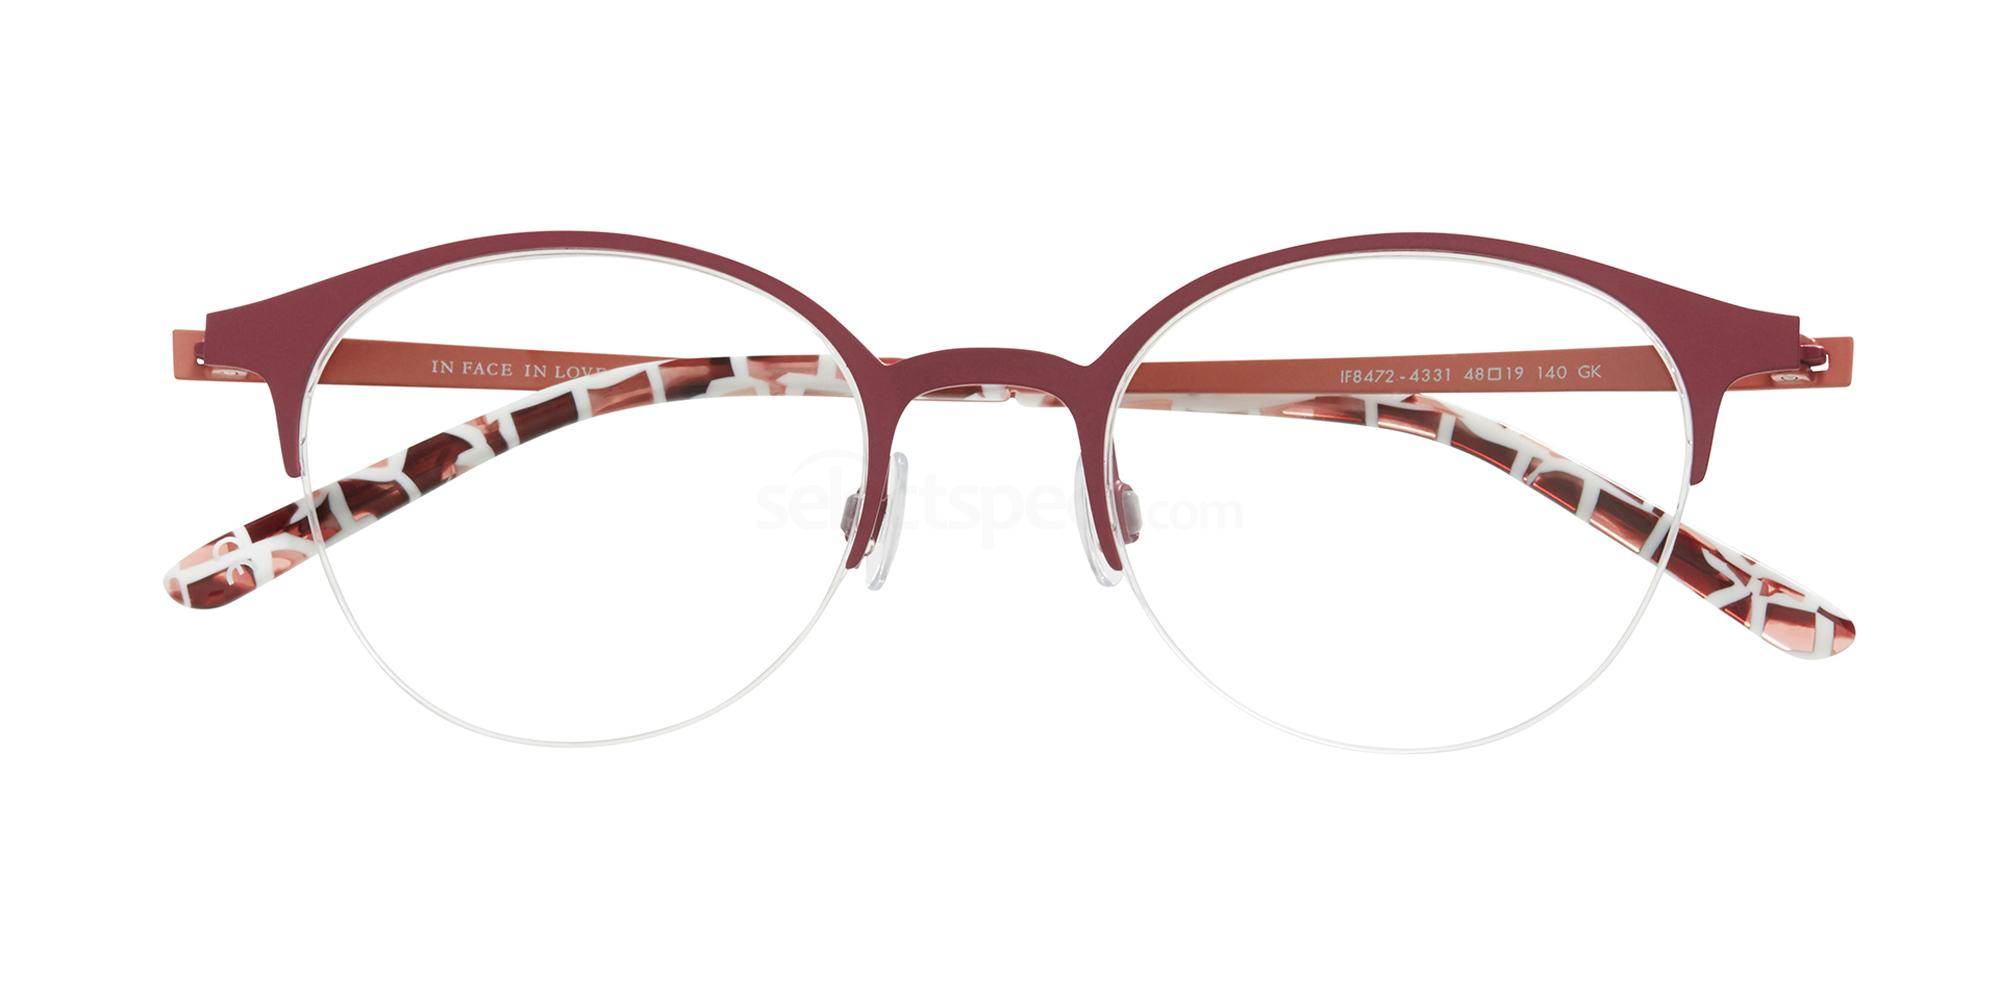 4331 IF8472 Glasses, Inface in Love